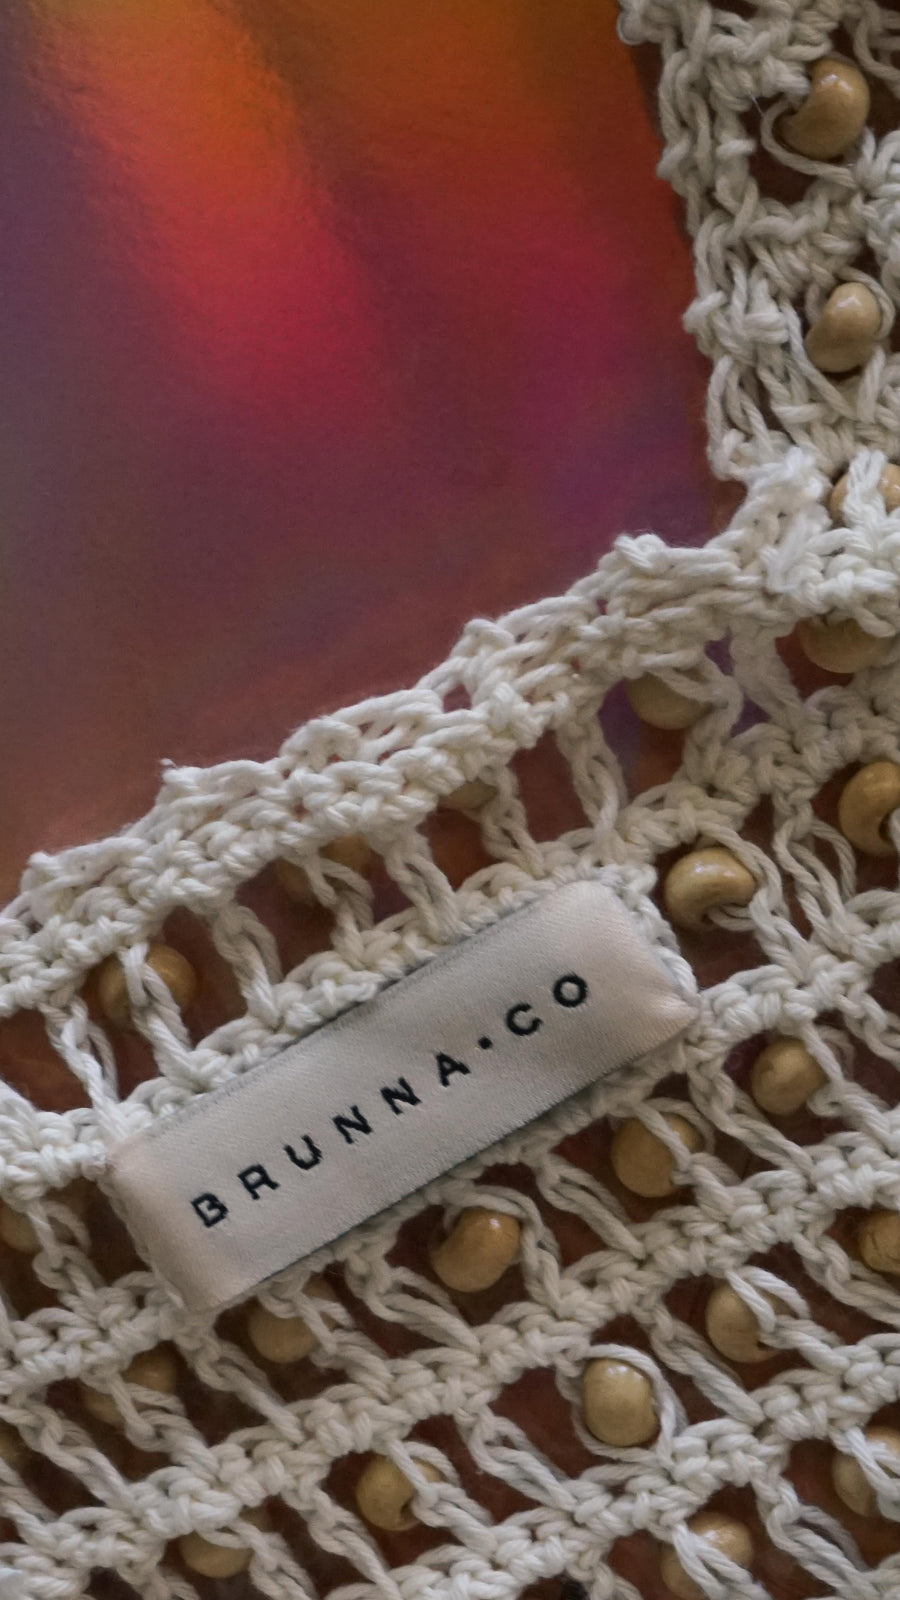 Crochet Bag With Wooden Beads By Brunna Co